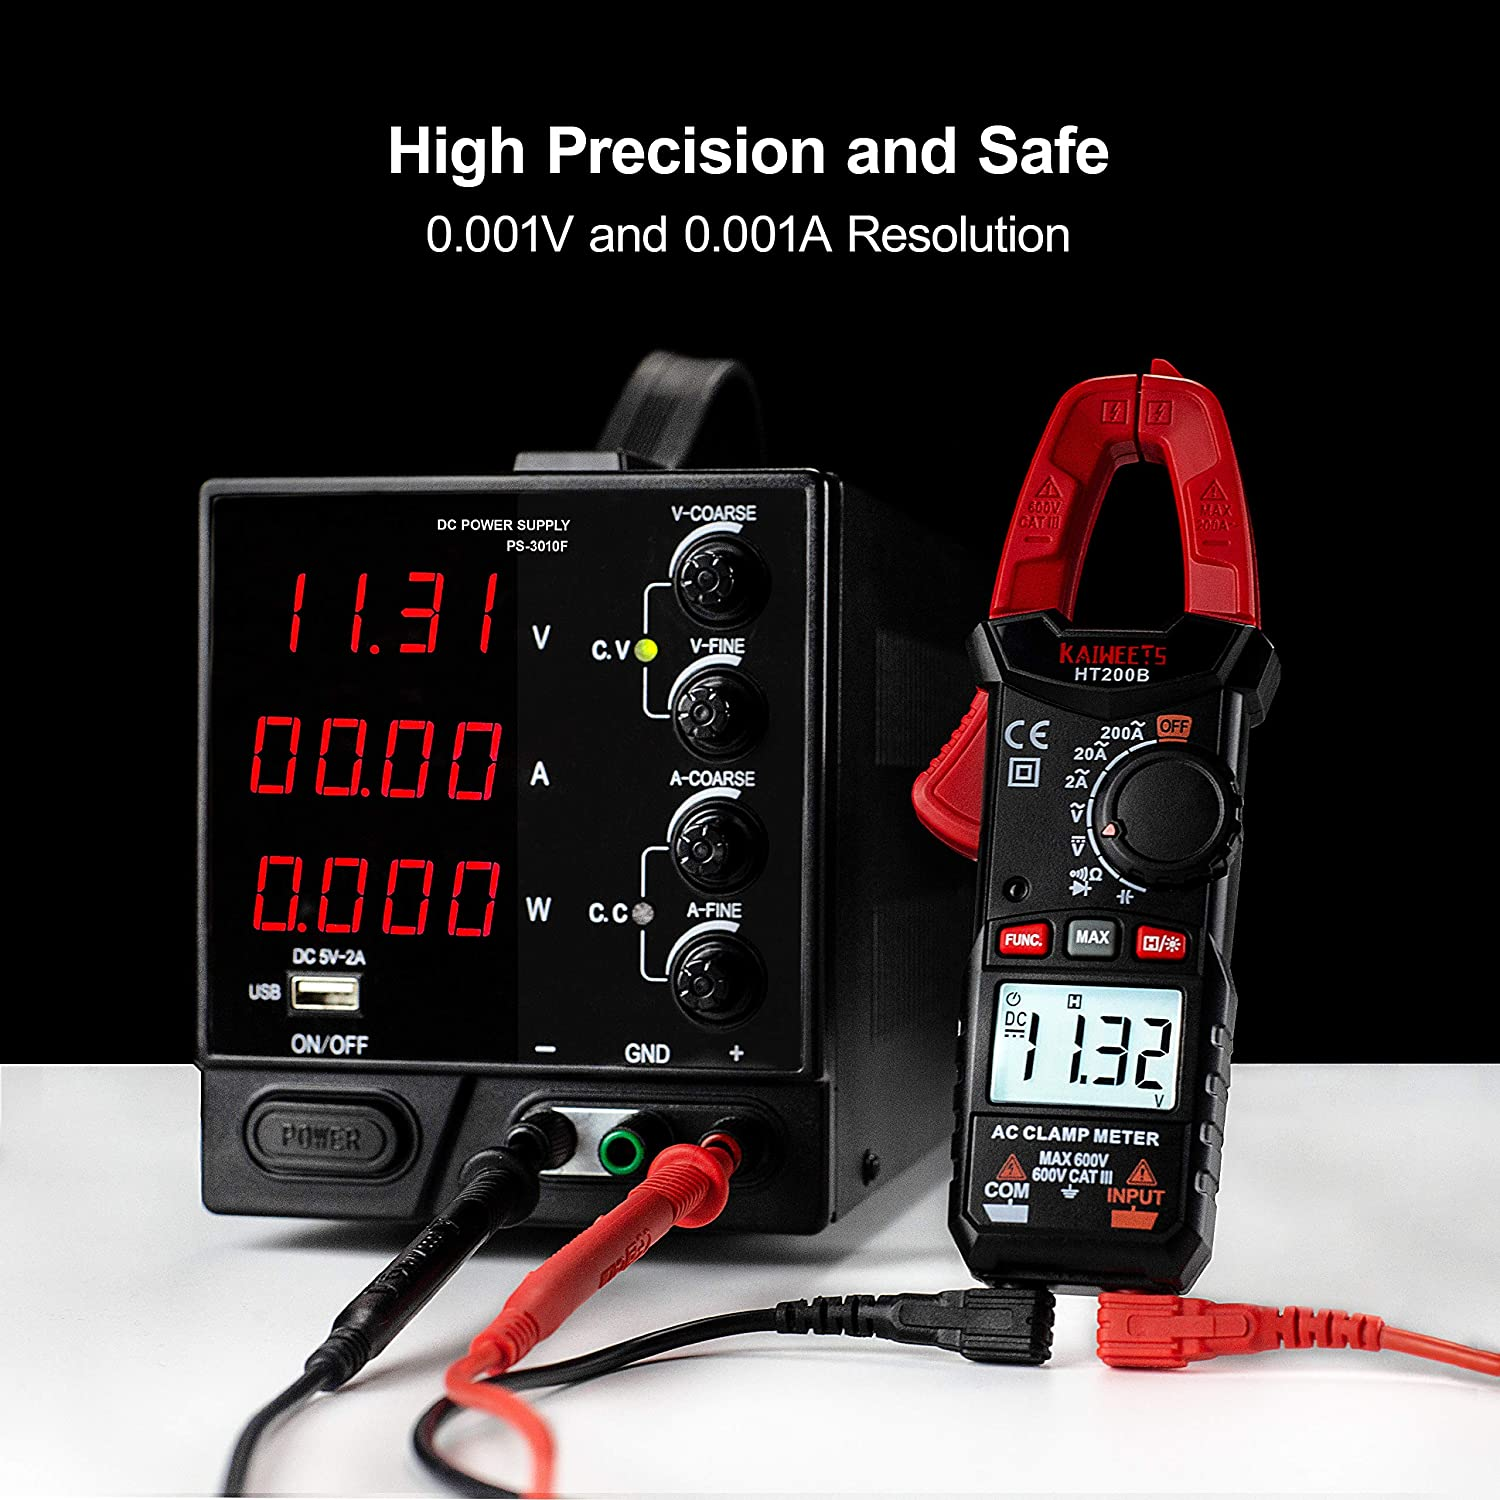 Kaiweets Ht200b Current Clamp Measuring Range Ac 0 200 A Auto Ranging Cat Iii 600 V Clamp Multimeter Measures Voltage Capacitance Continuity No Dc Measurement Business Industry Science